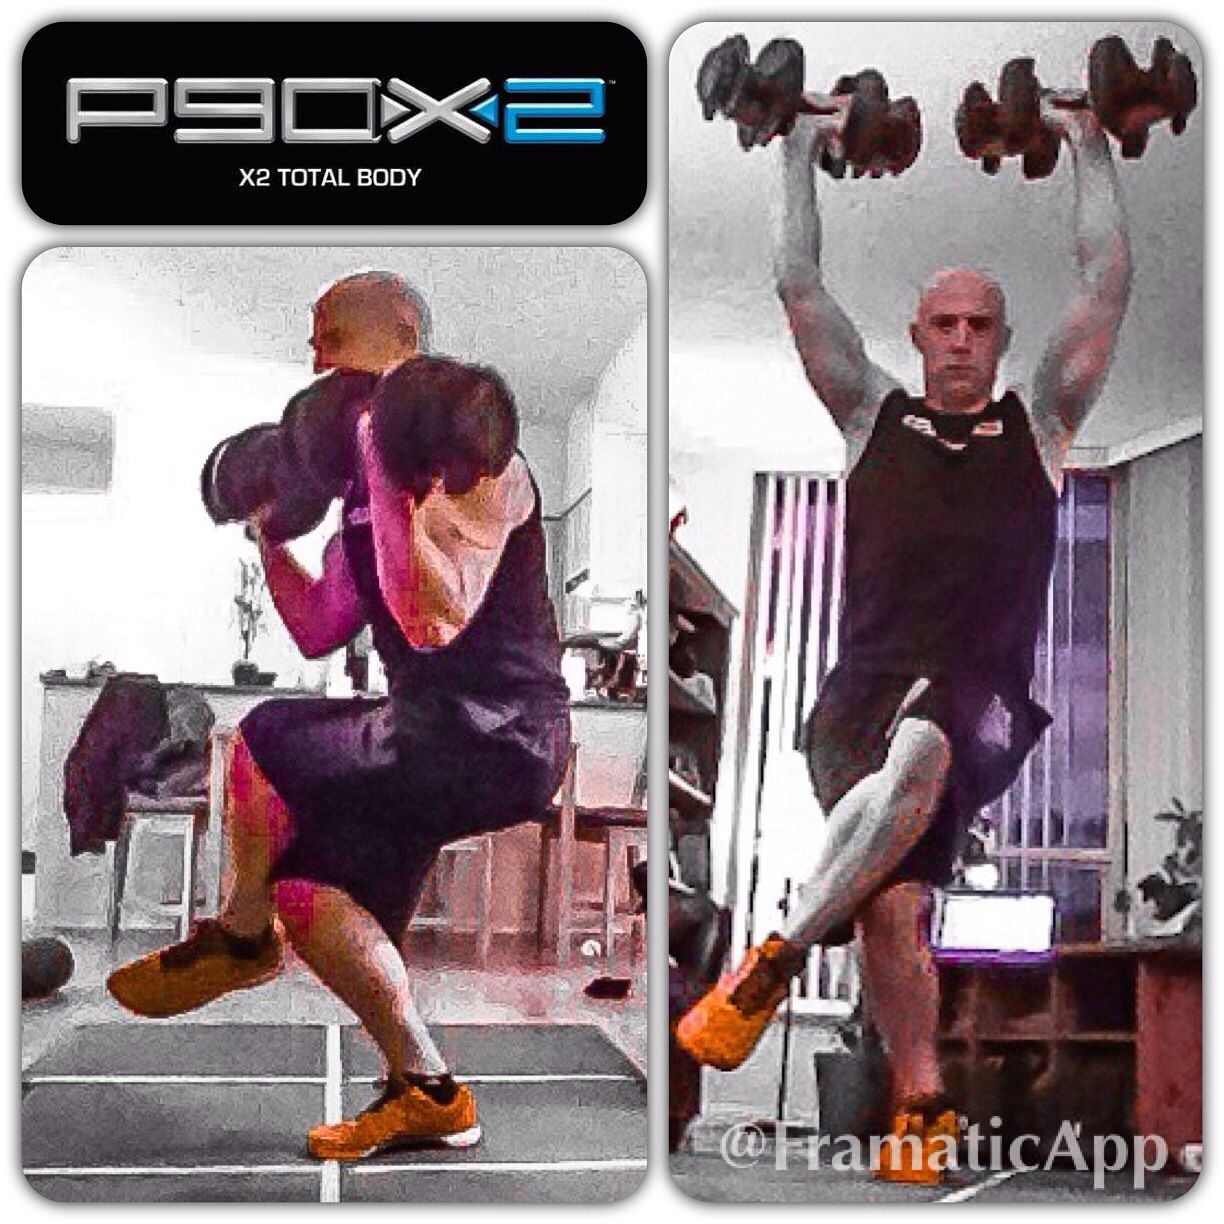 P90x2 Total Body One Of The Toughest P90x Routines Out